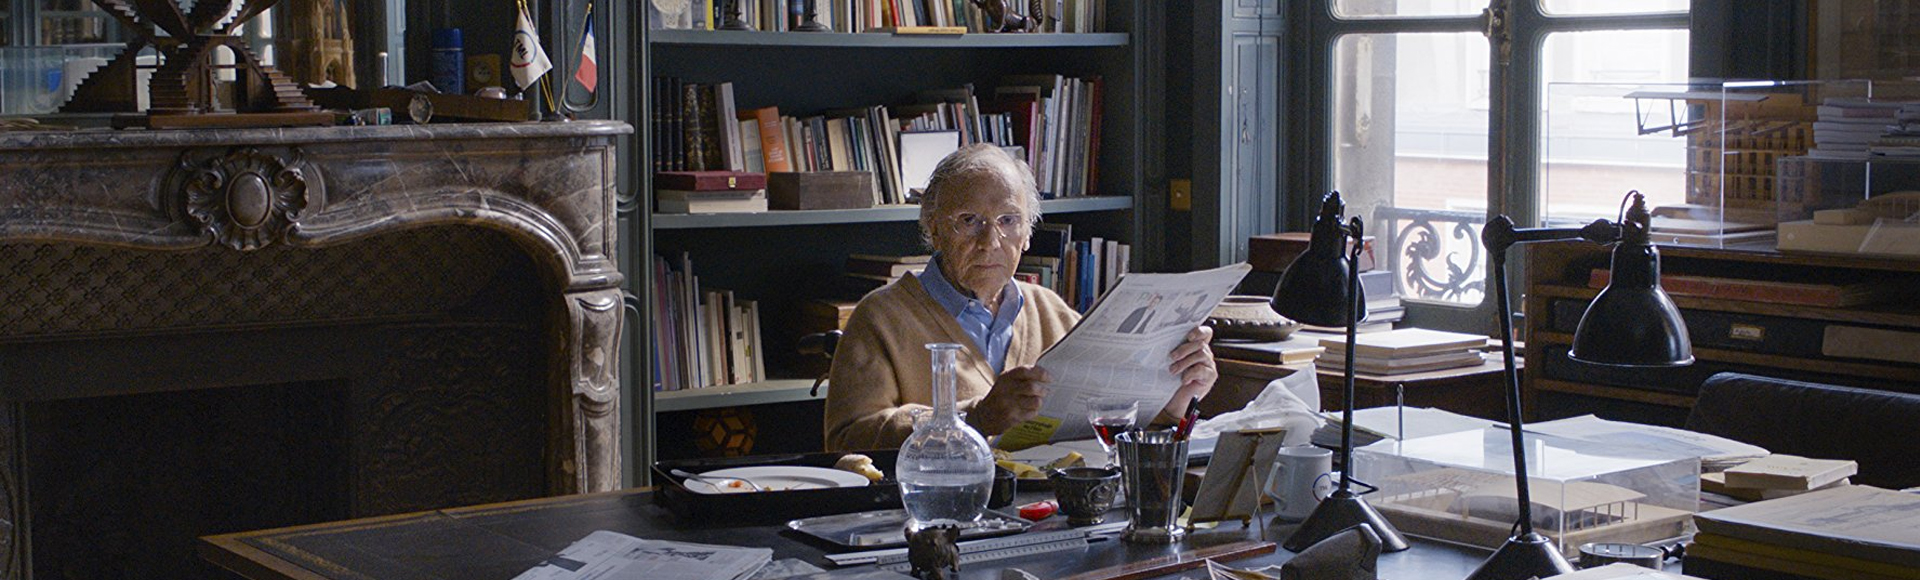 Happy End του Michael Haneke